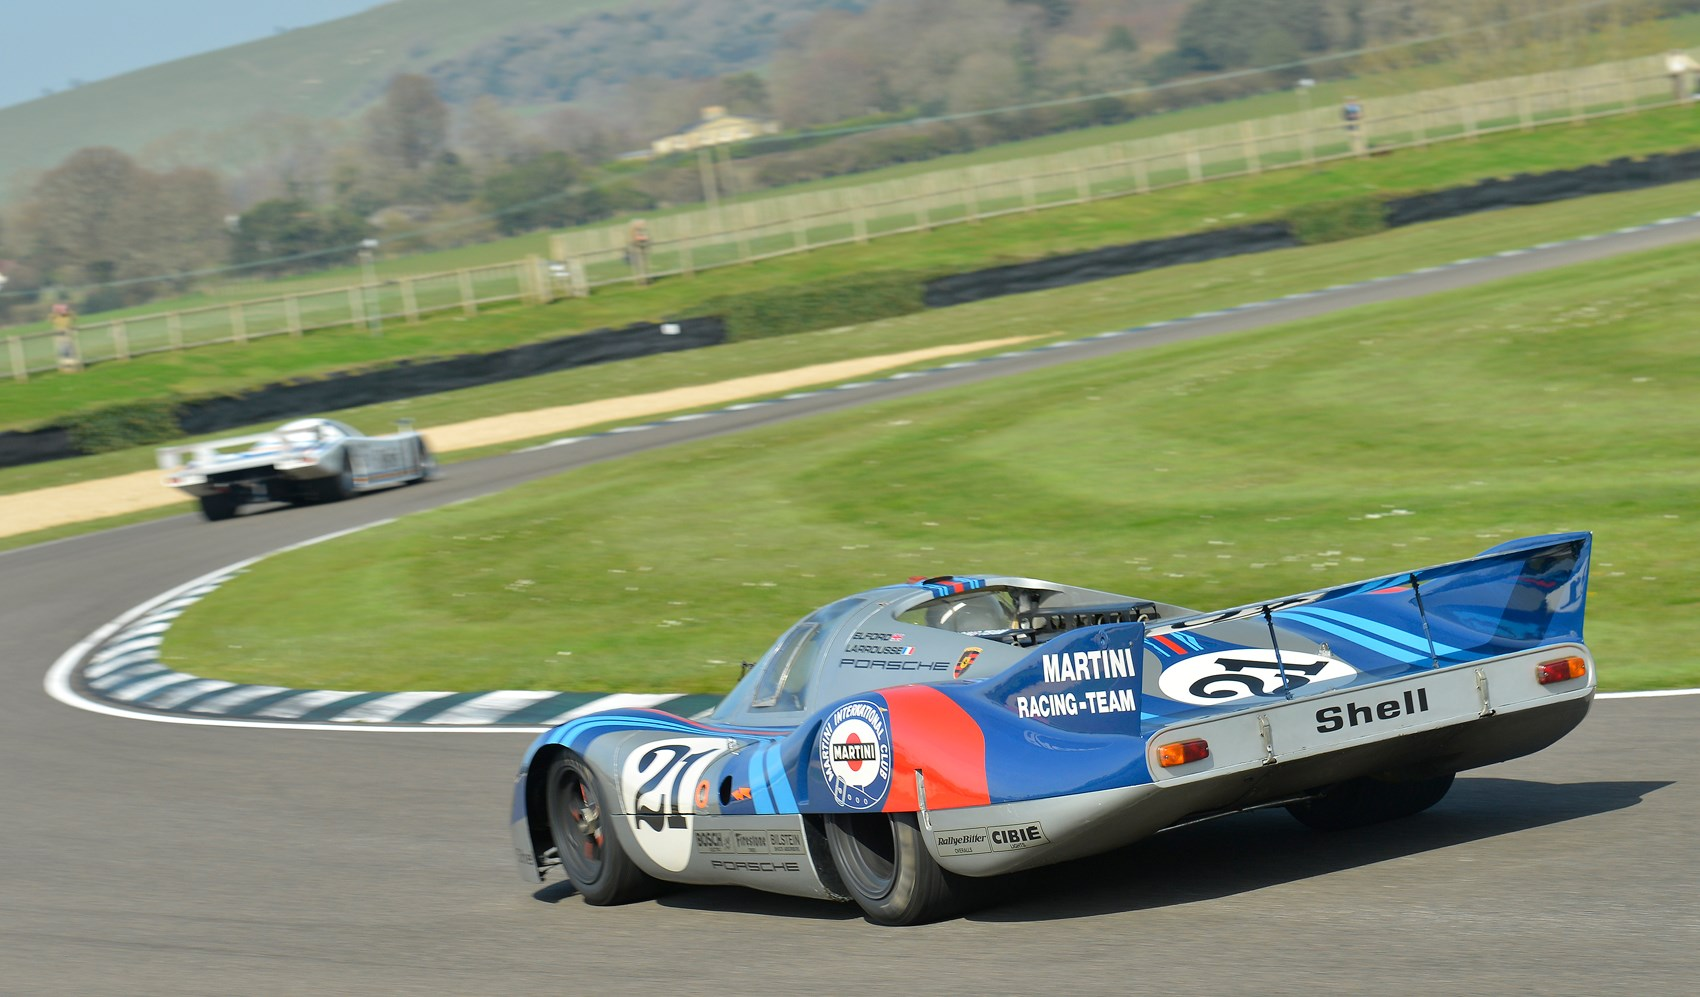 The Most Fearsome Le Mans Cars Of All Time Head To